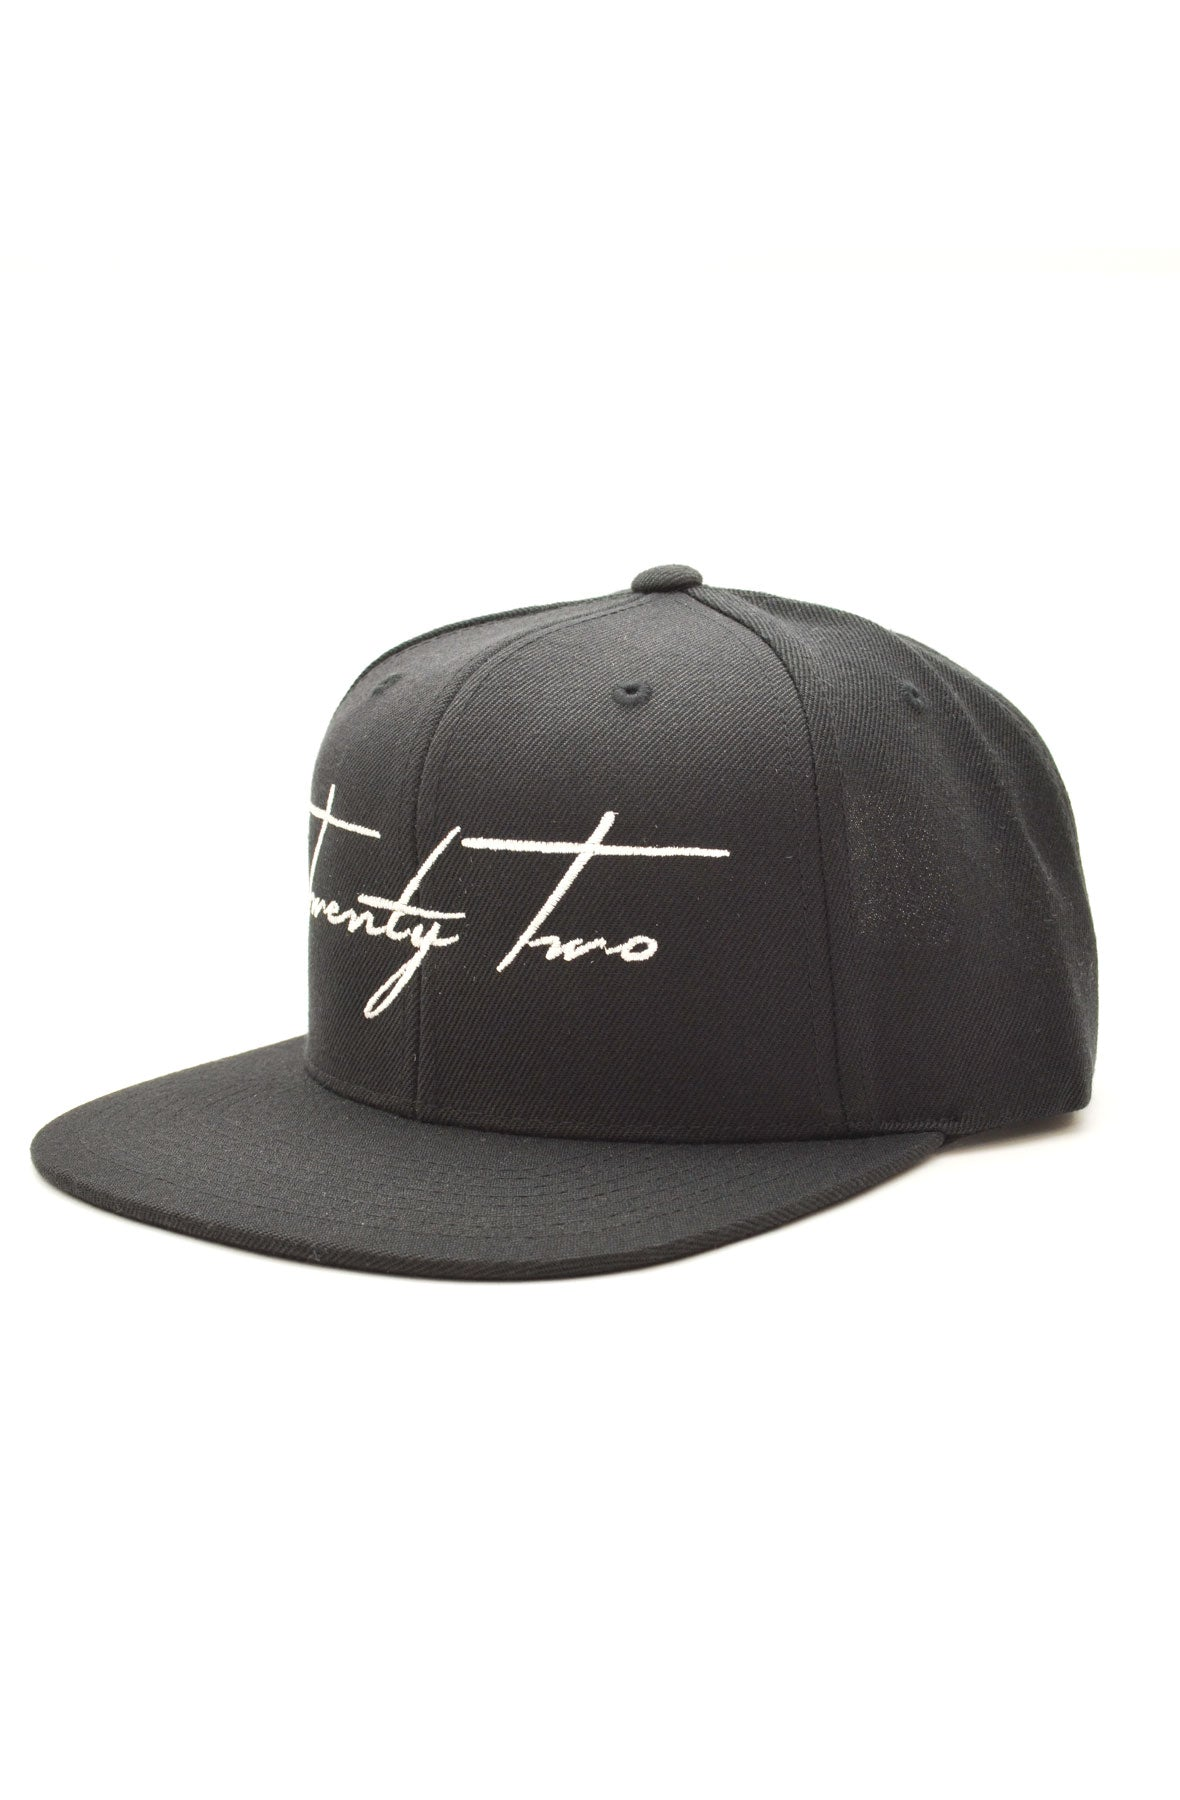 Signature Snapback in Black/White